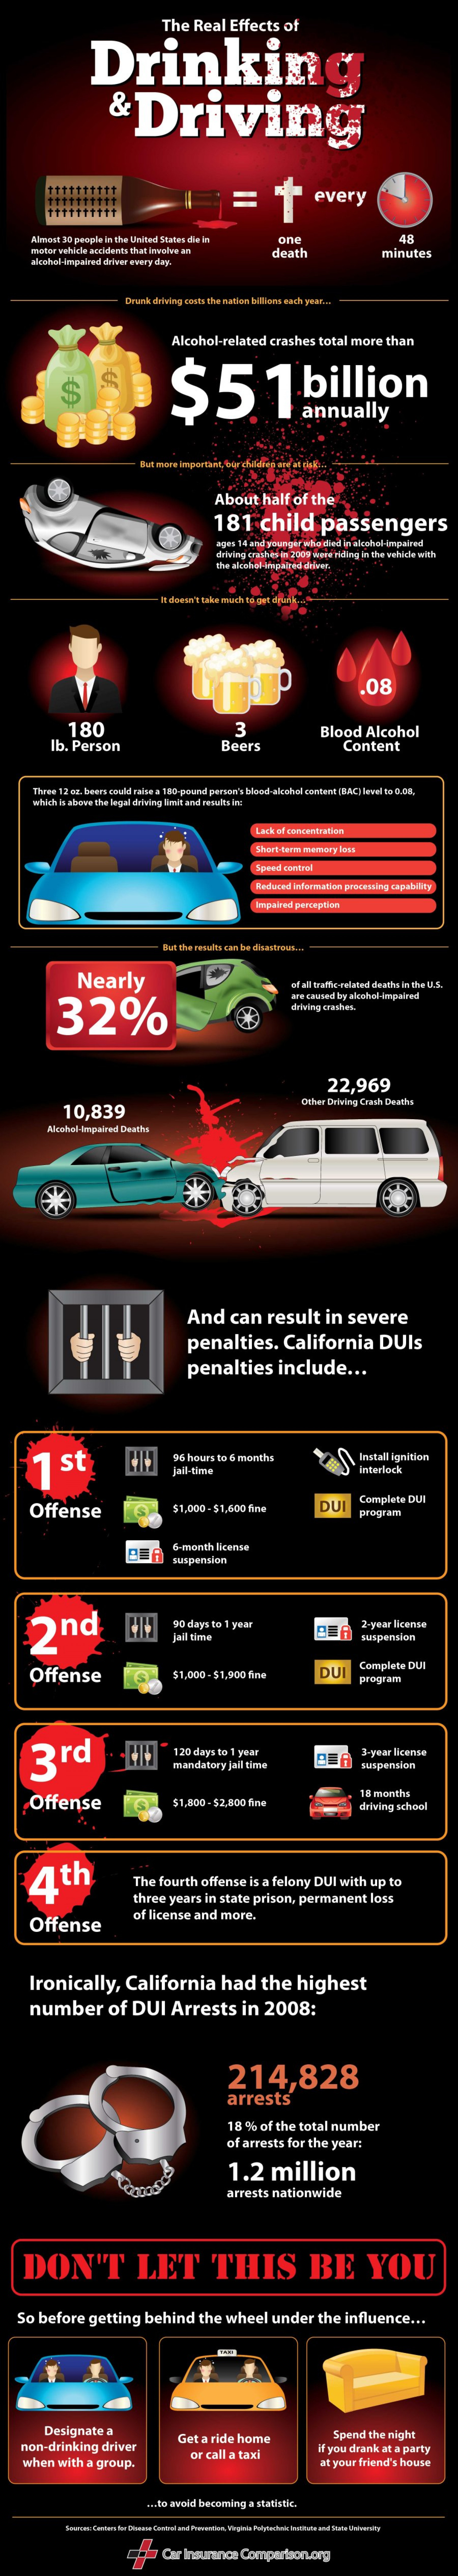 Drunk Driving Statistics Infographic